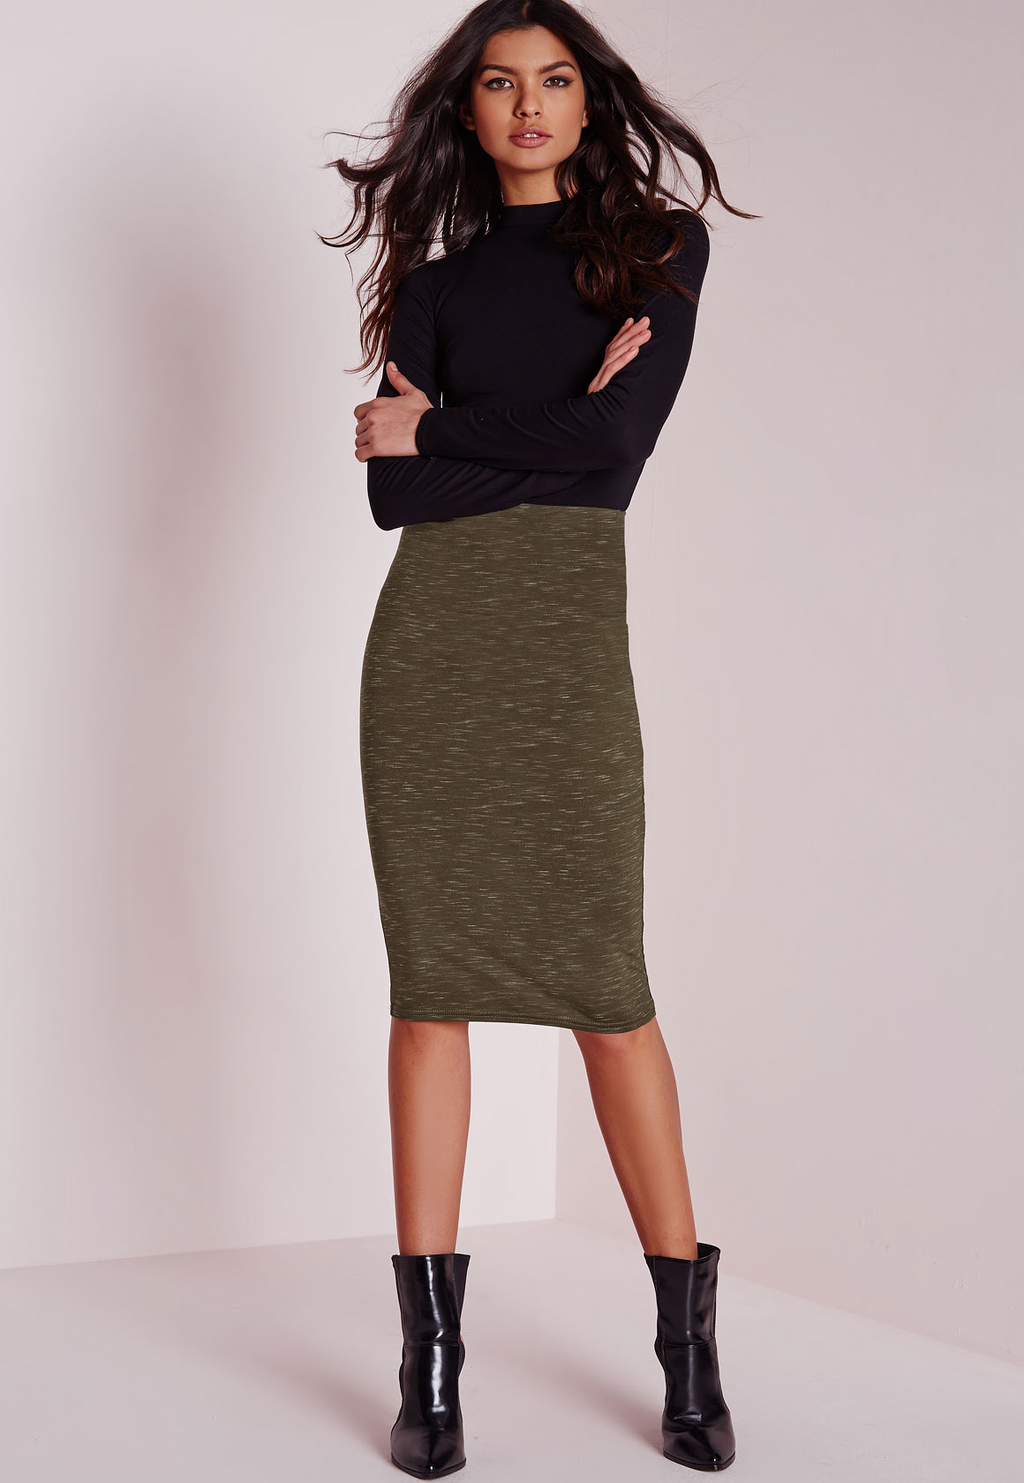 Slub Jersey Midi Skirt Khaki, Beige - length: below the knee; fit: tight; waist: high rise; hip detail: draws attention to hips; predominant colour: khaki; occasions: evening; fibres: polyester/polyamide - stretch; style: tube; texture group: jersey - clingy; pattern type: fabric; pattern: marl; season: a/w 2015; wardrobe: event